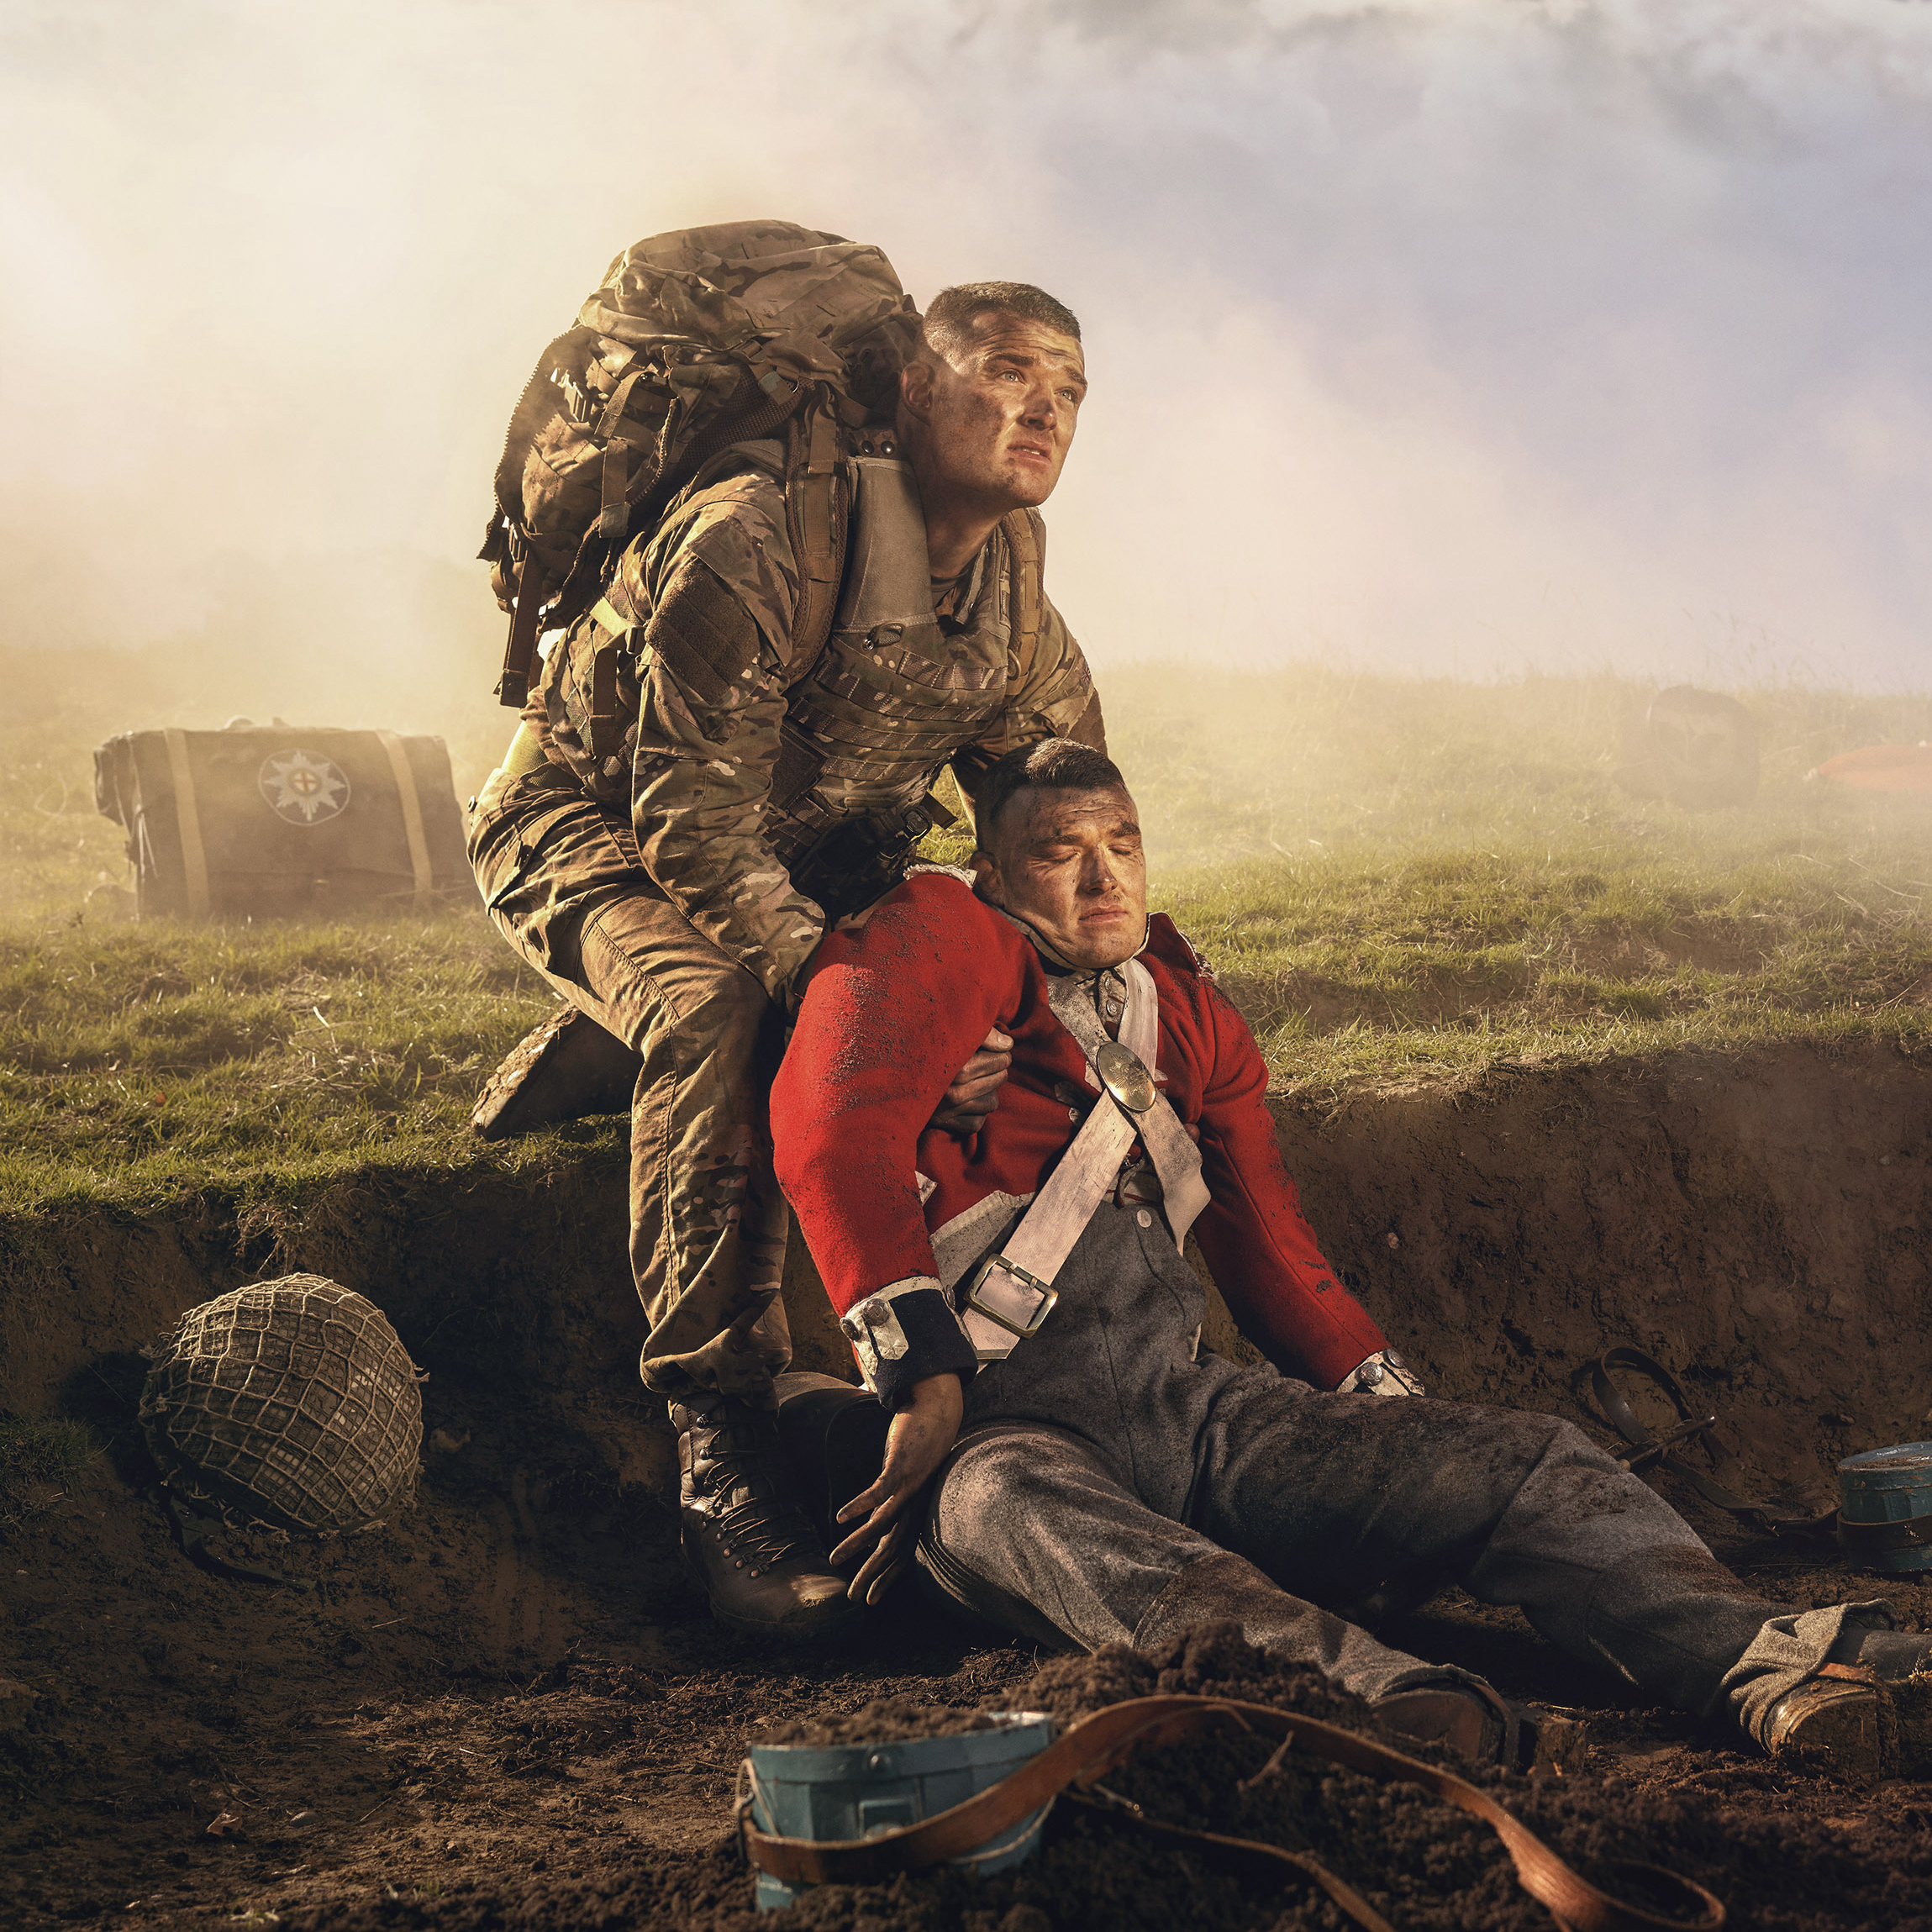 A modern day soldier supporting a Napoleonic soldier on the battlefield.